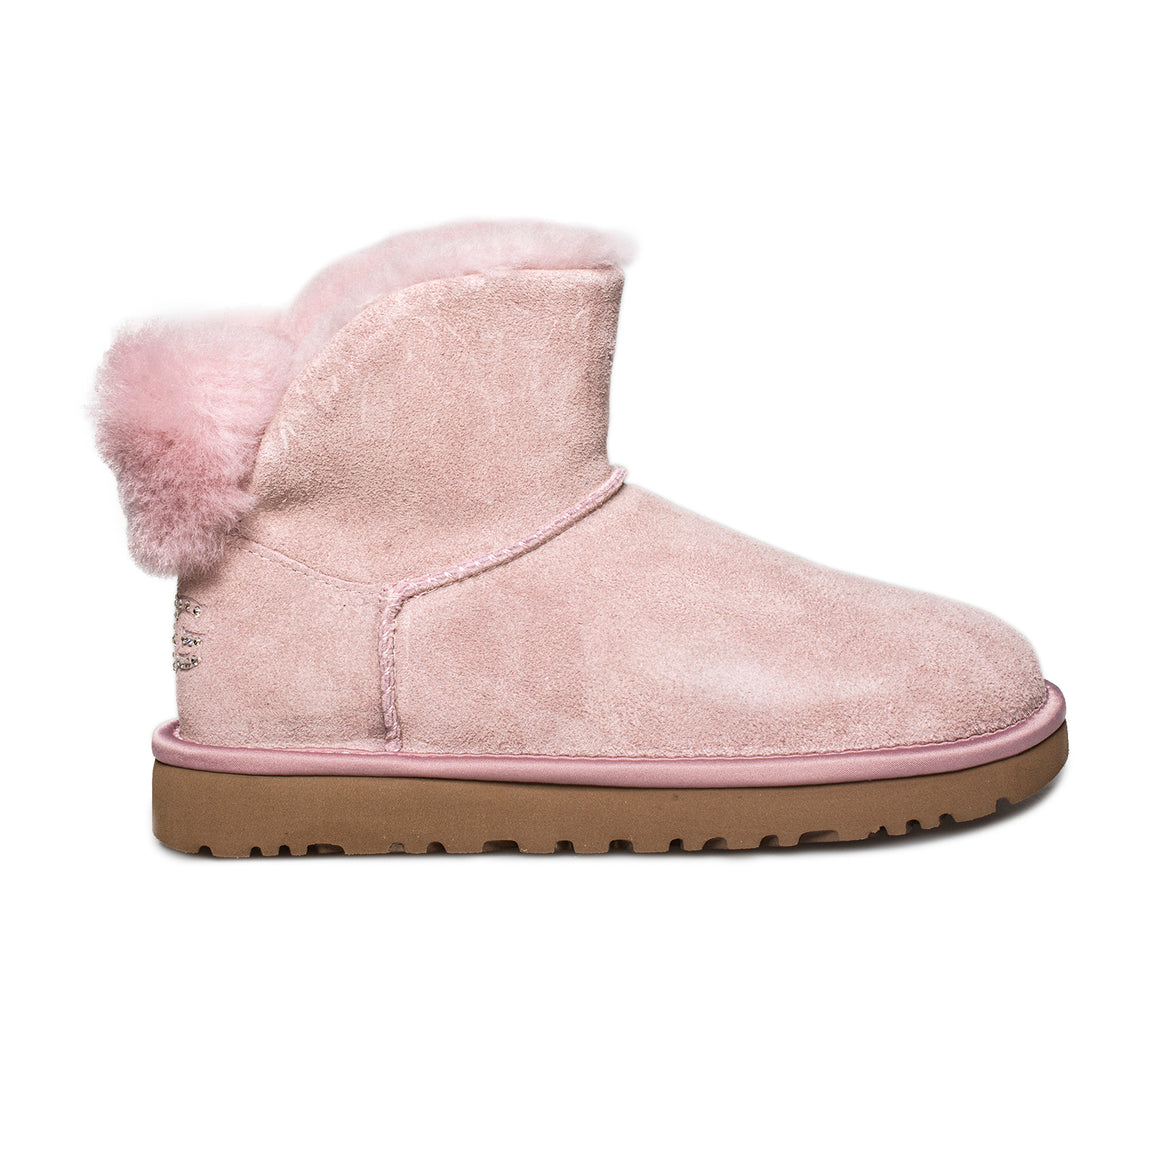 UGG Classic Bling Mini Pink Crystal Boots - Women's